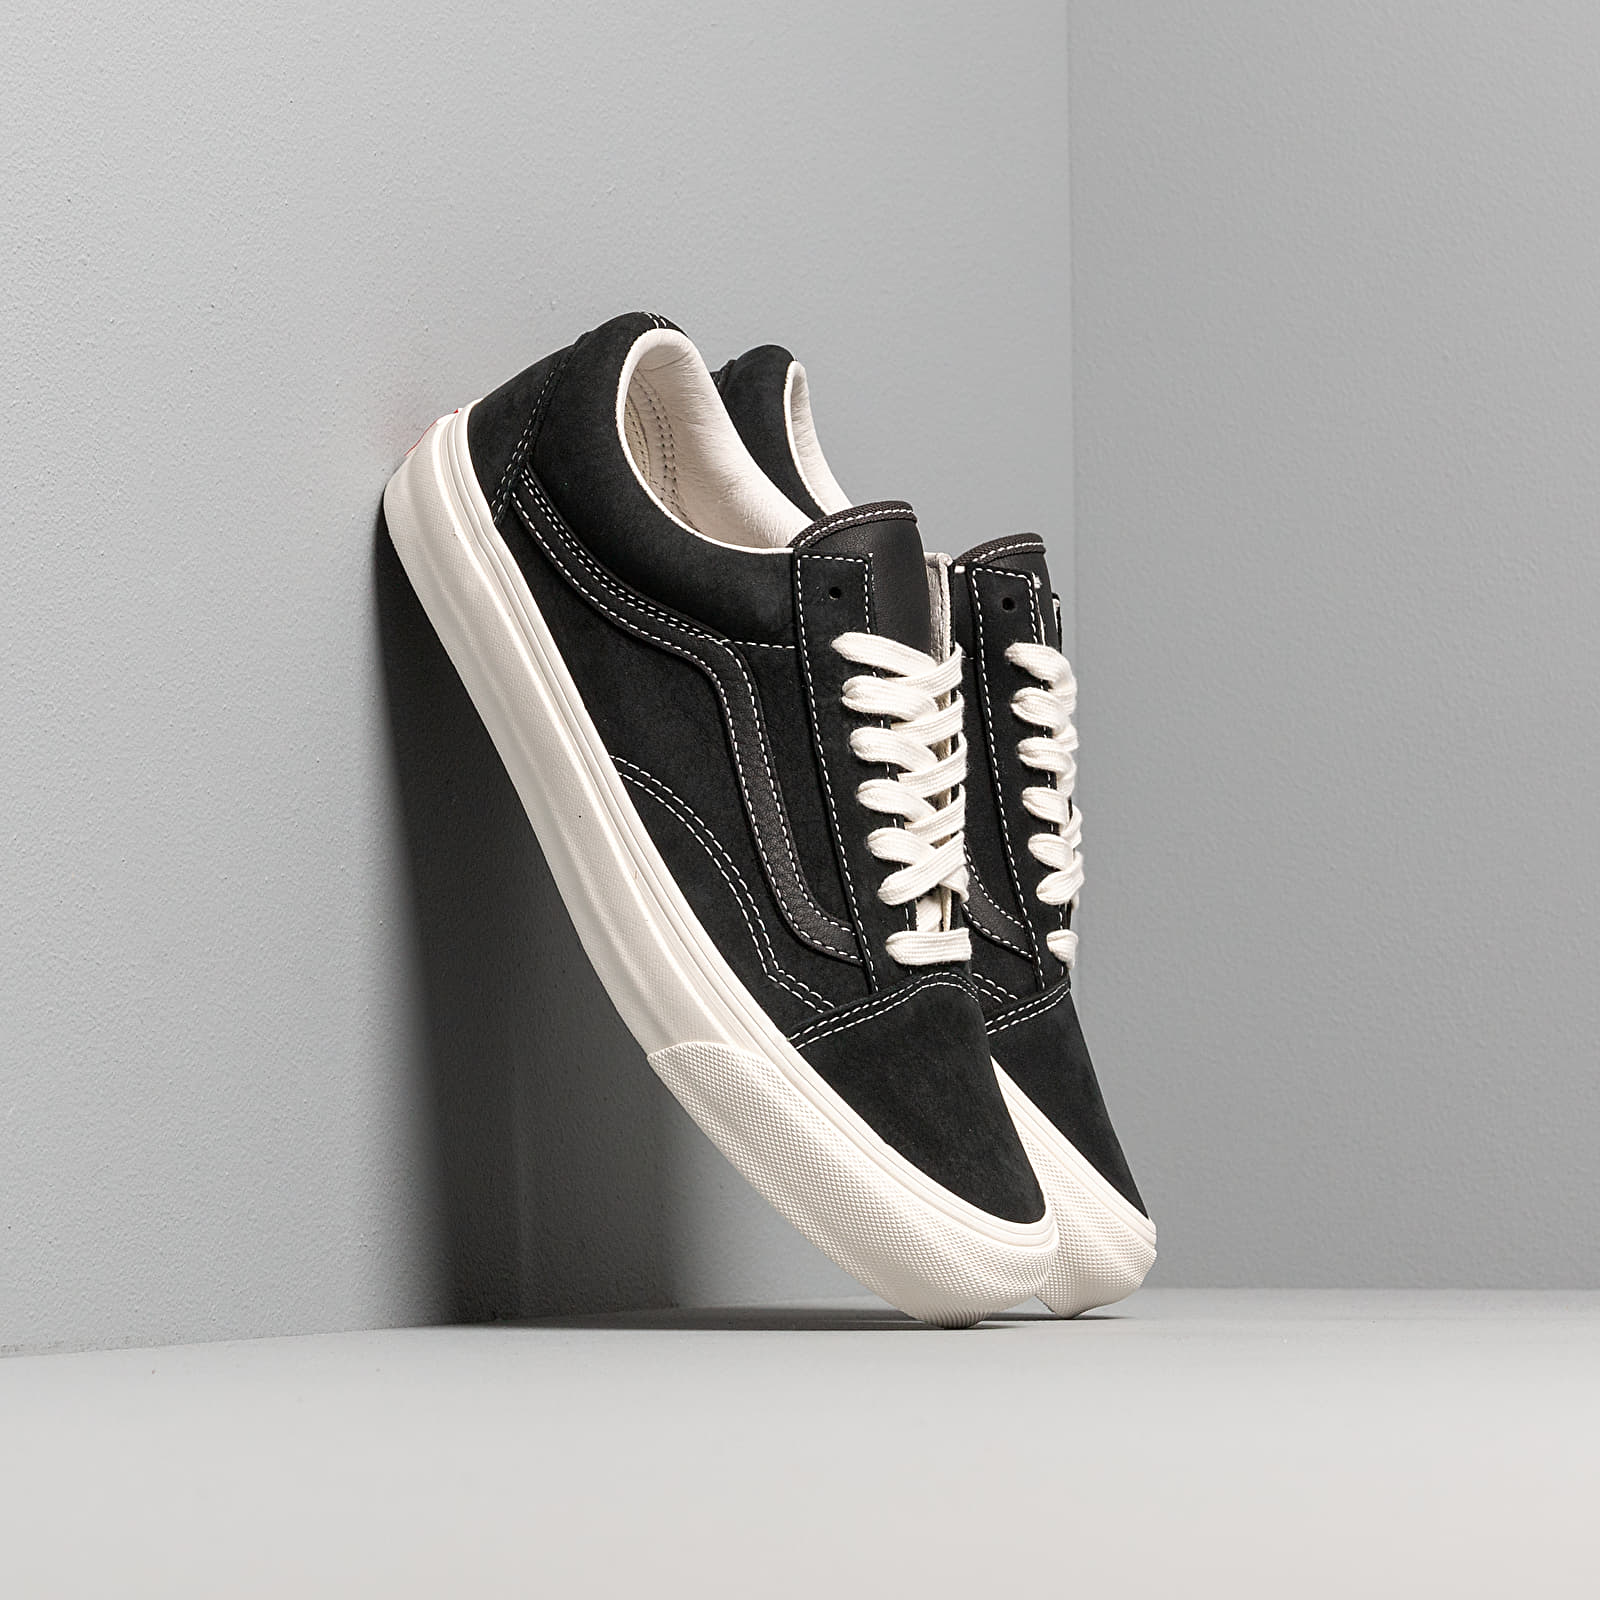 Vans OG Old Skool LX (Nubuck/ Leather)